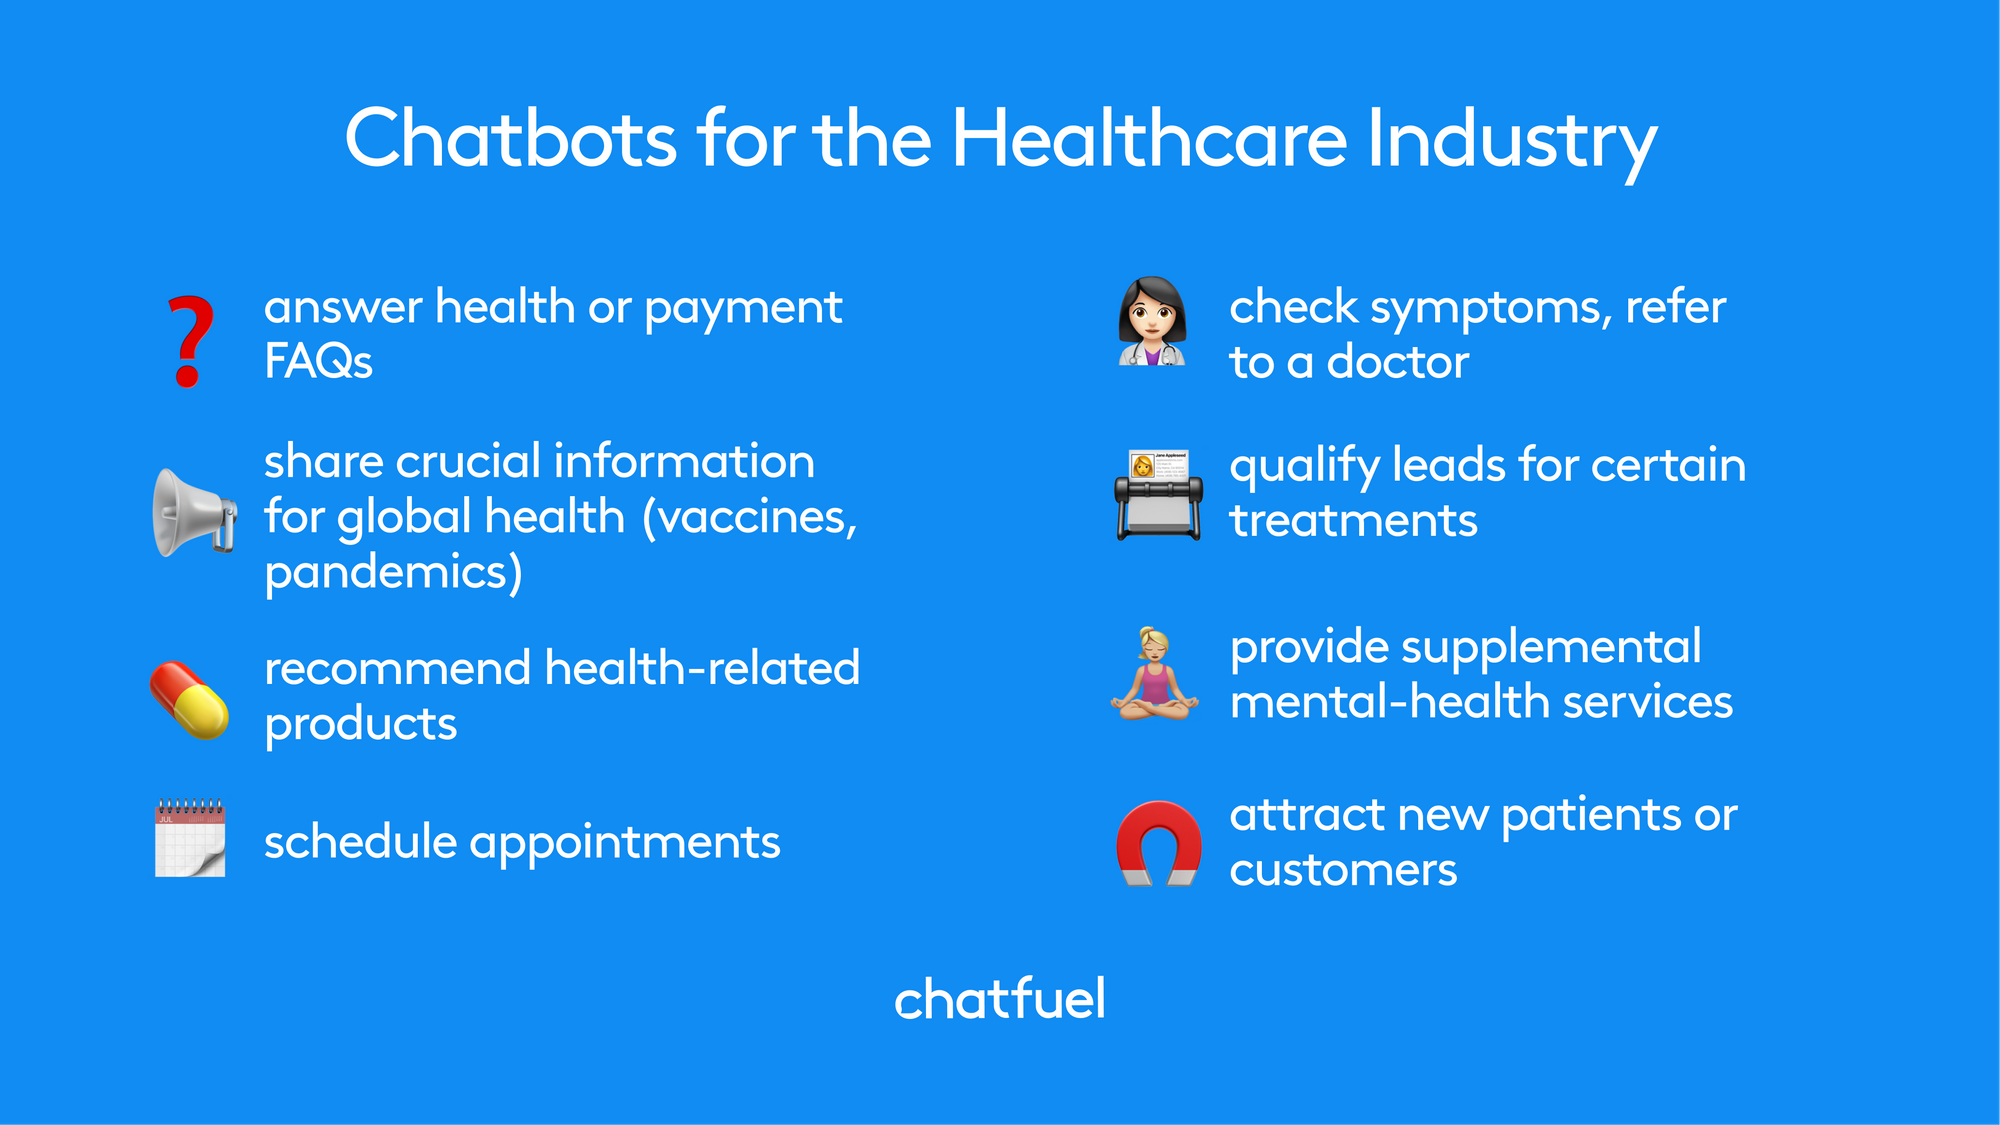 Chatbots for healthcare industry